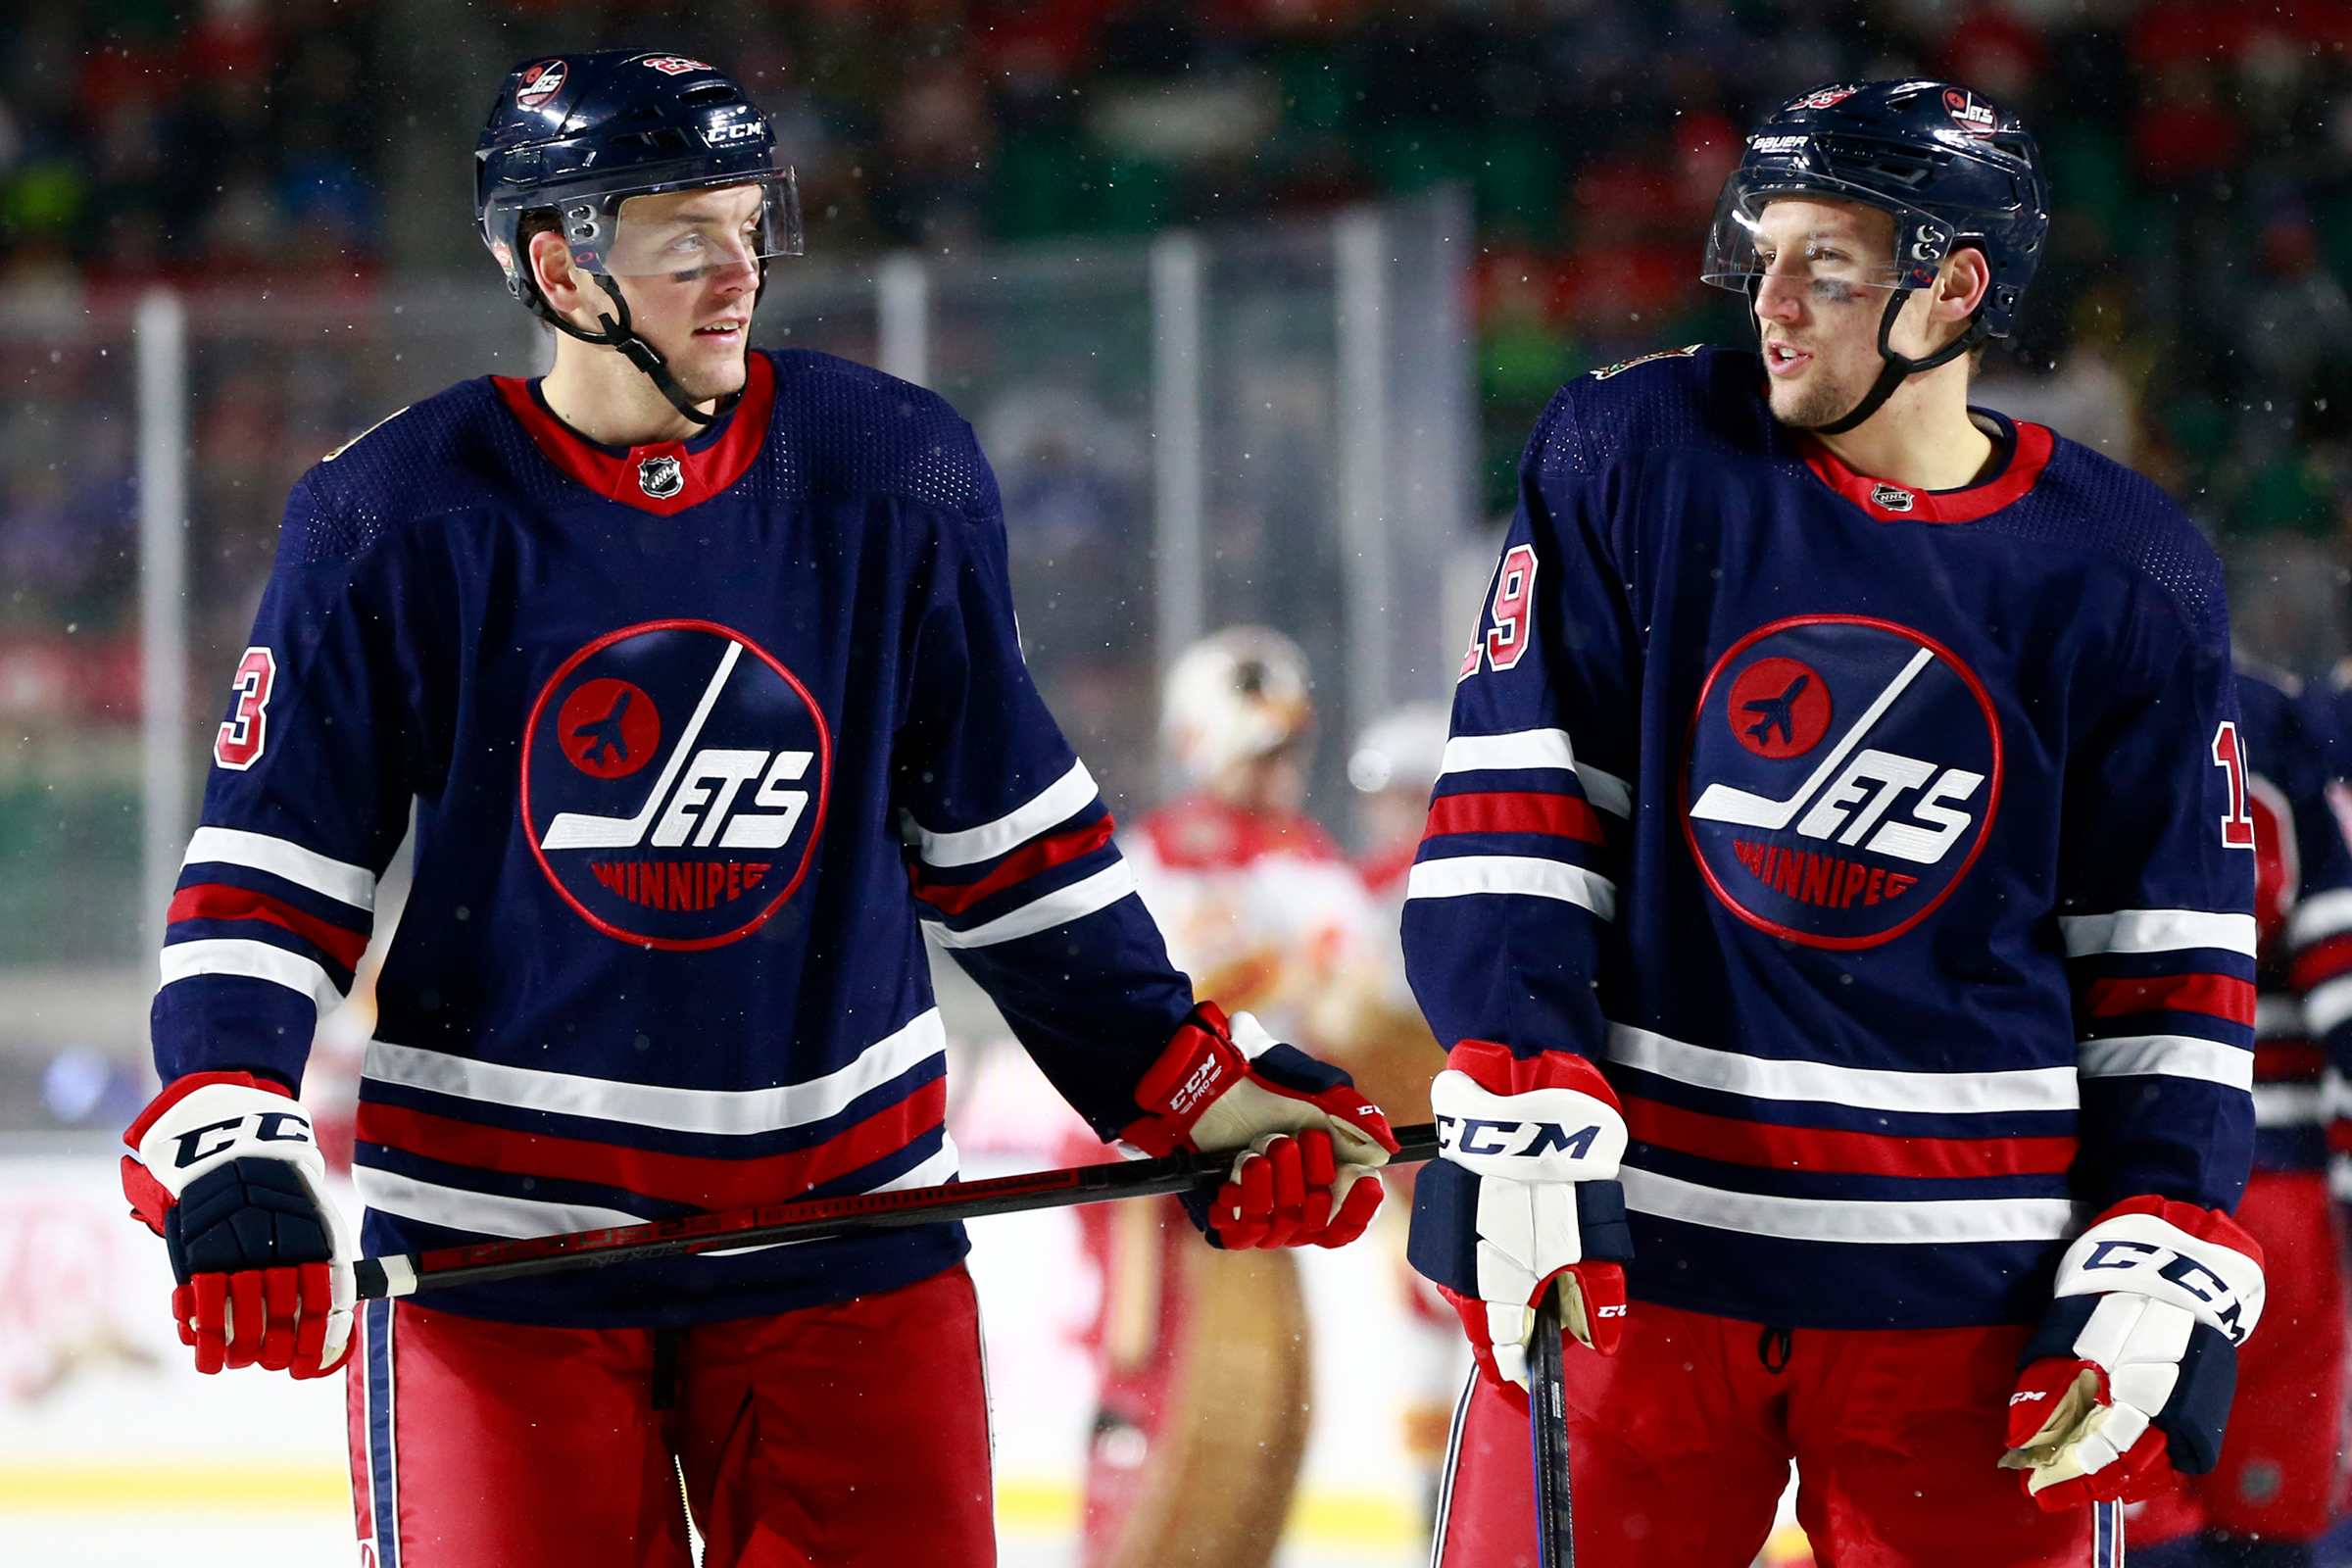 Carl Dahlstrom #23 (L) and David Gustafsson #19 of the Winnipeg Jets stand talk while playing in the 2019 Tim Hortons NHL Heritage Classic against the Calgary Flames at Mosaic Stadium on October 26, 2019 in Regina, Canada